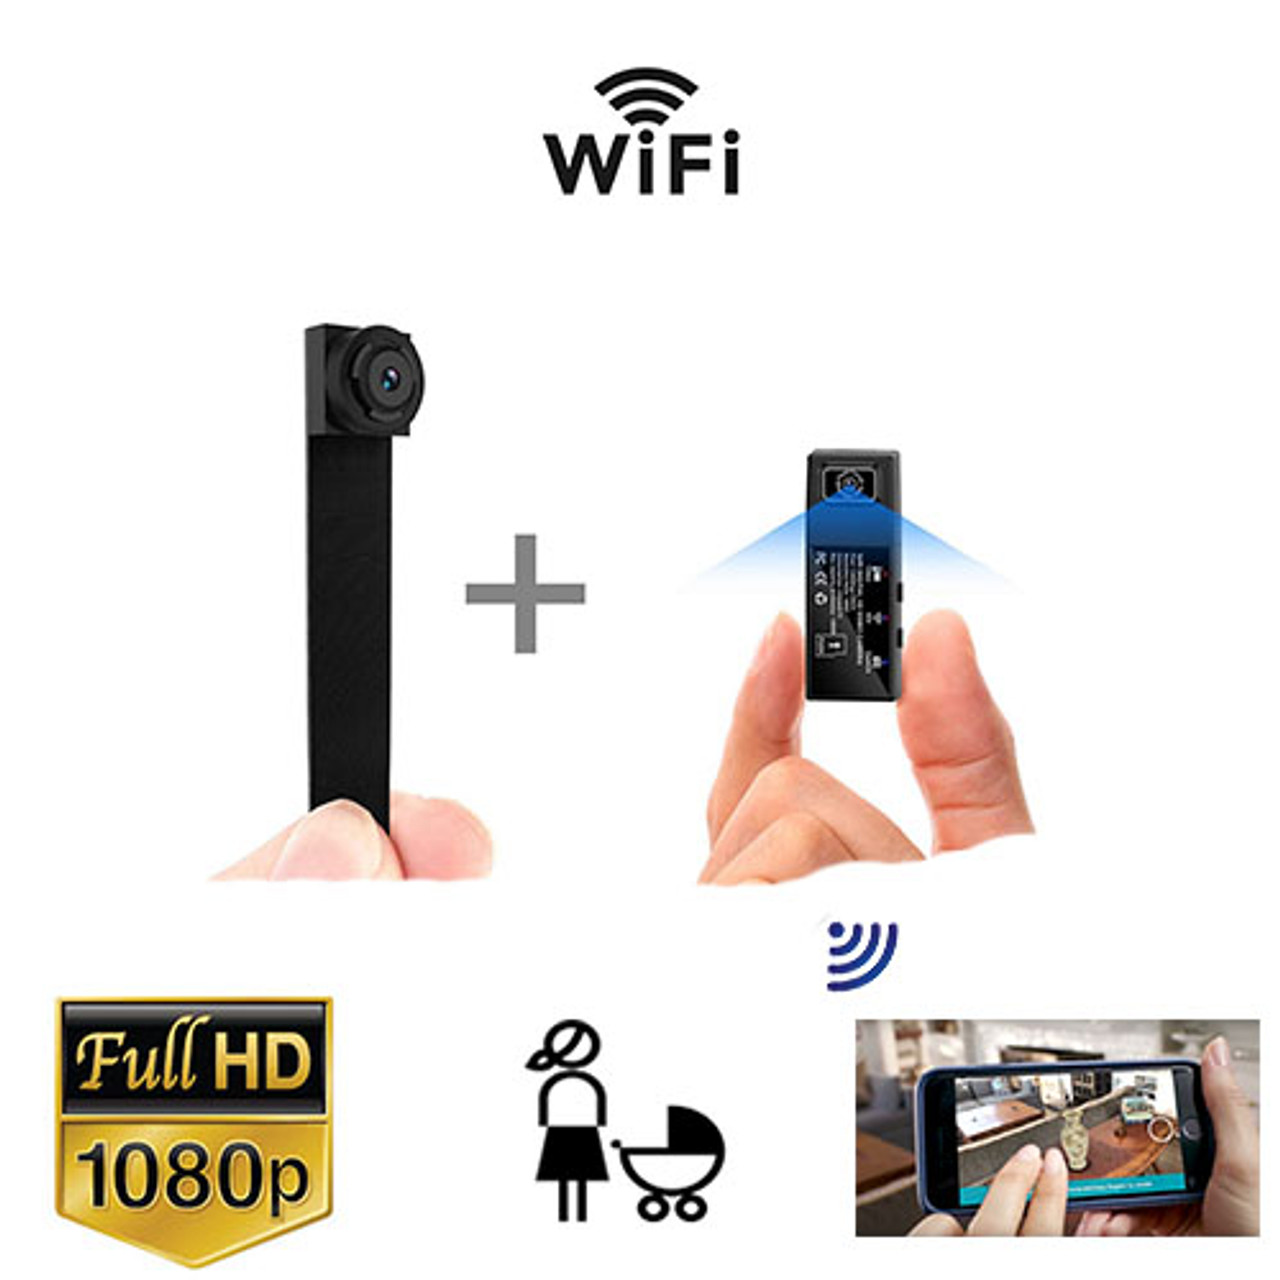 WiFi Camera HD 1080P Portable Wireless Small IP Camera Nanny Cam with Interchangeable Lens/Motion Detection for Home Office(Upgraded APP)